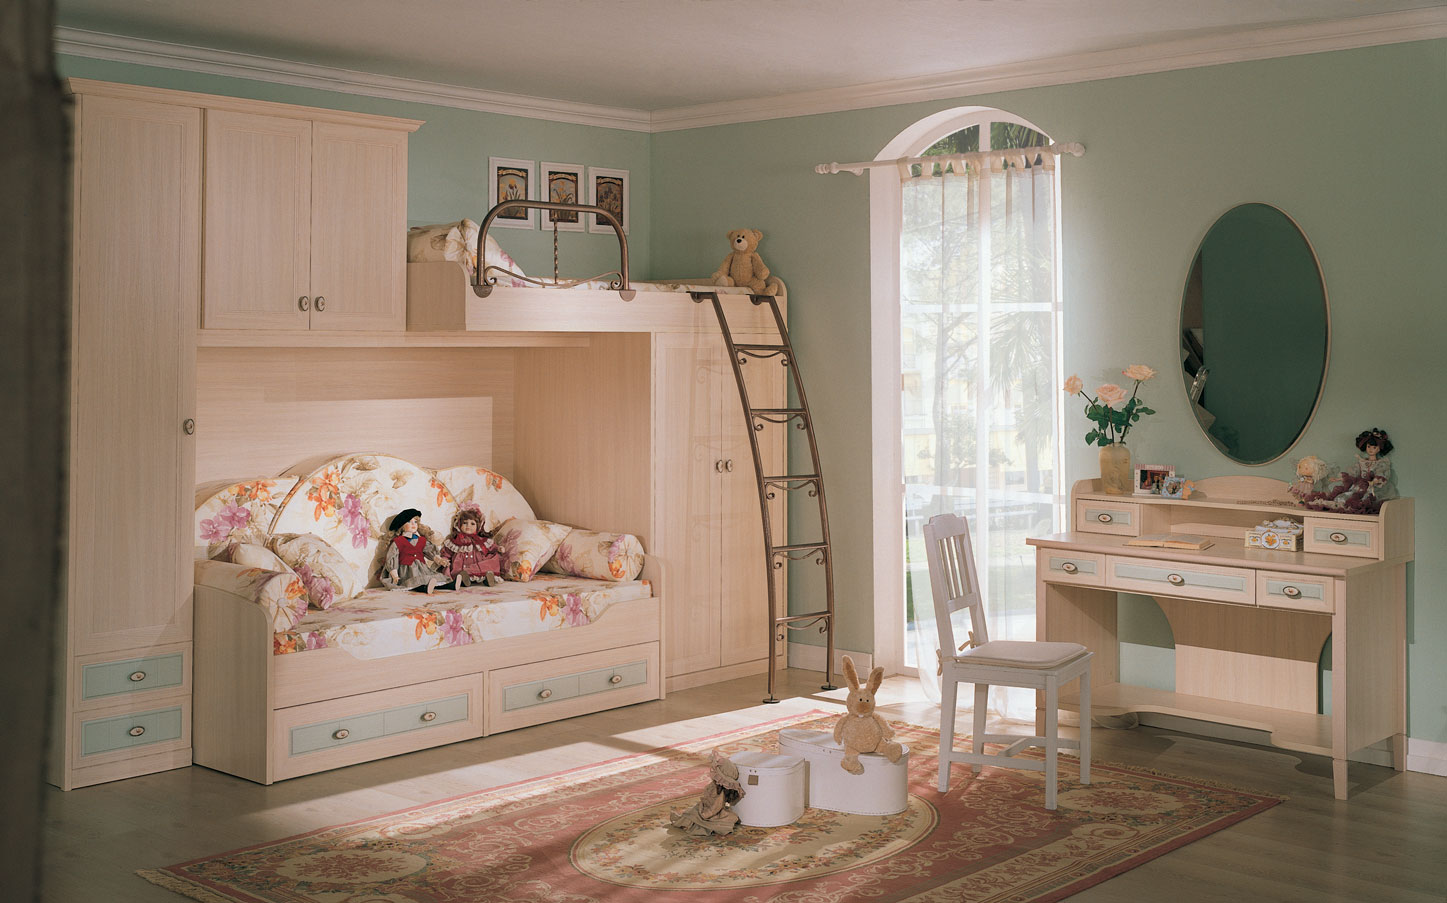 Fabulous Kids Room Ideas 1447 x 903 · 211 kB · jpeg